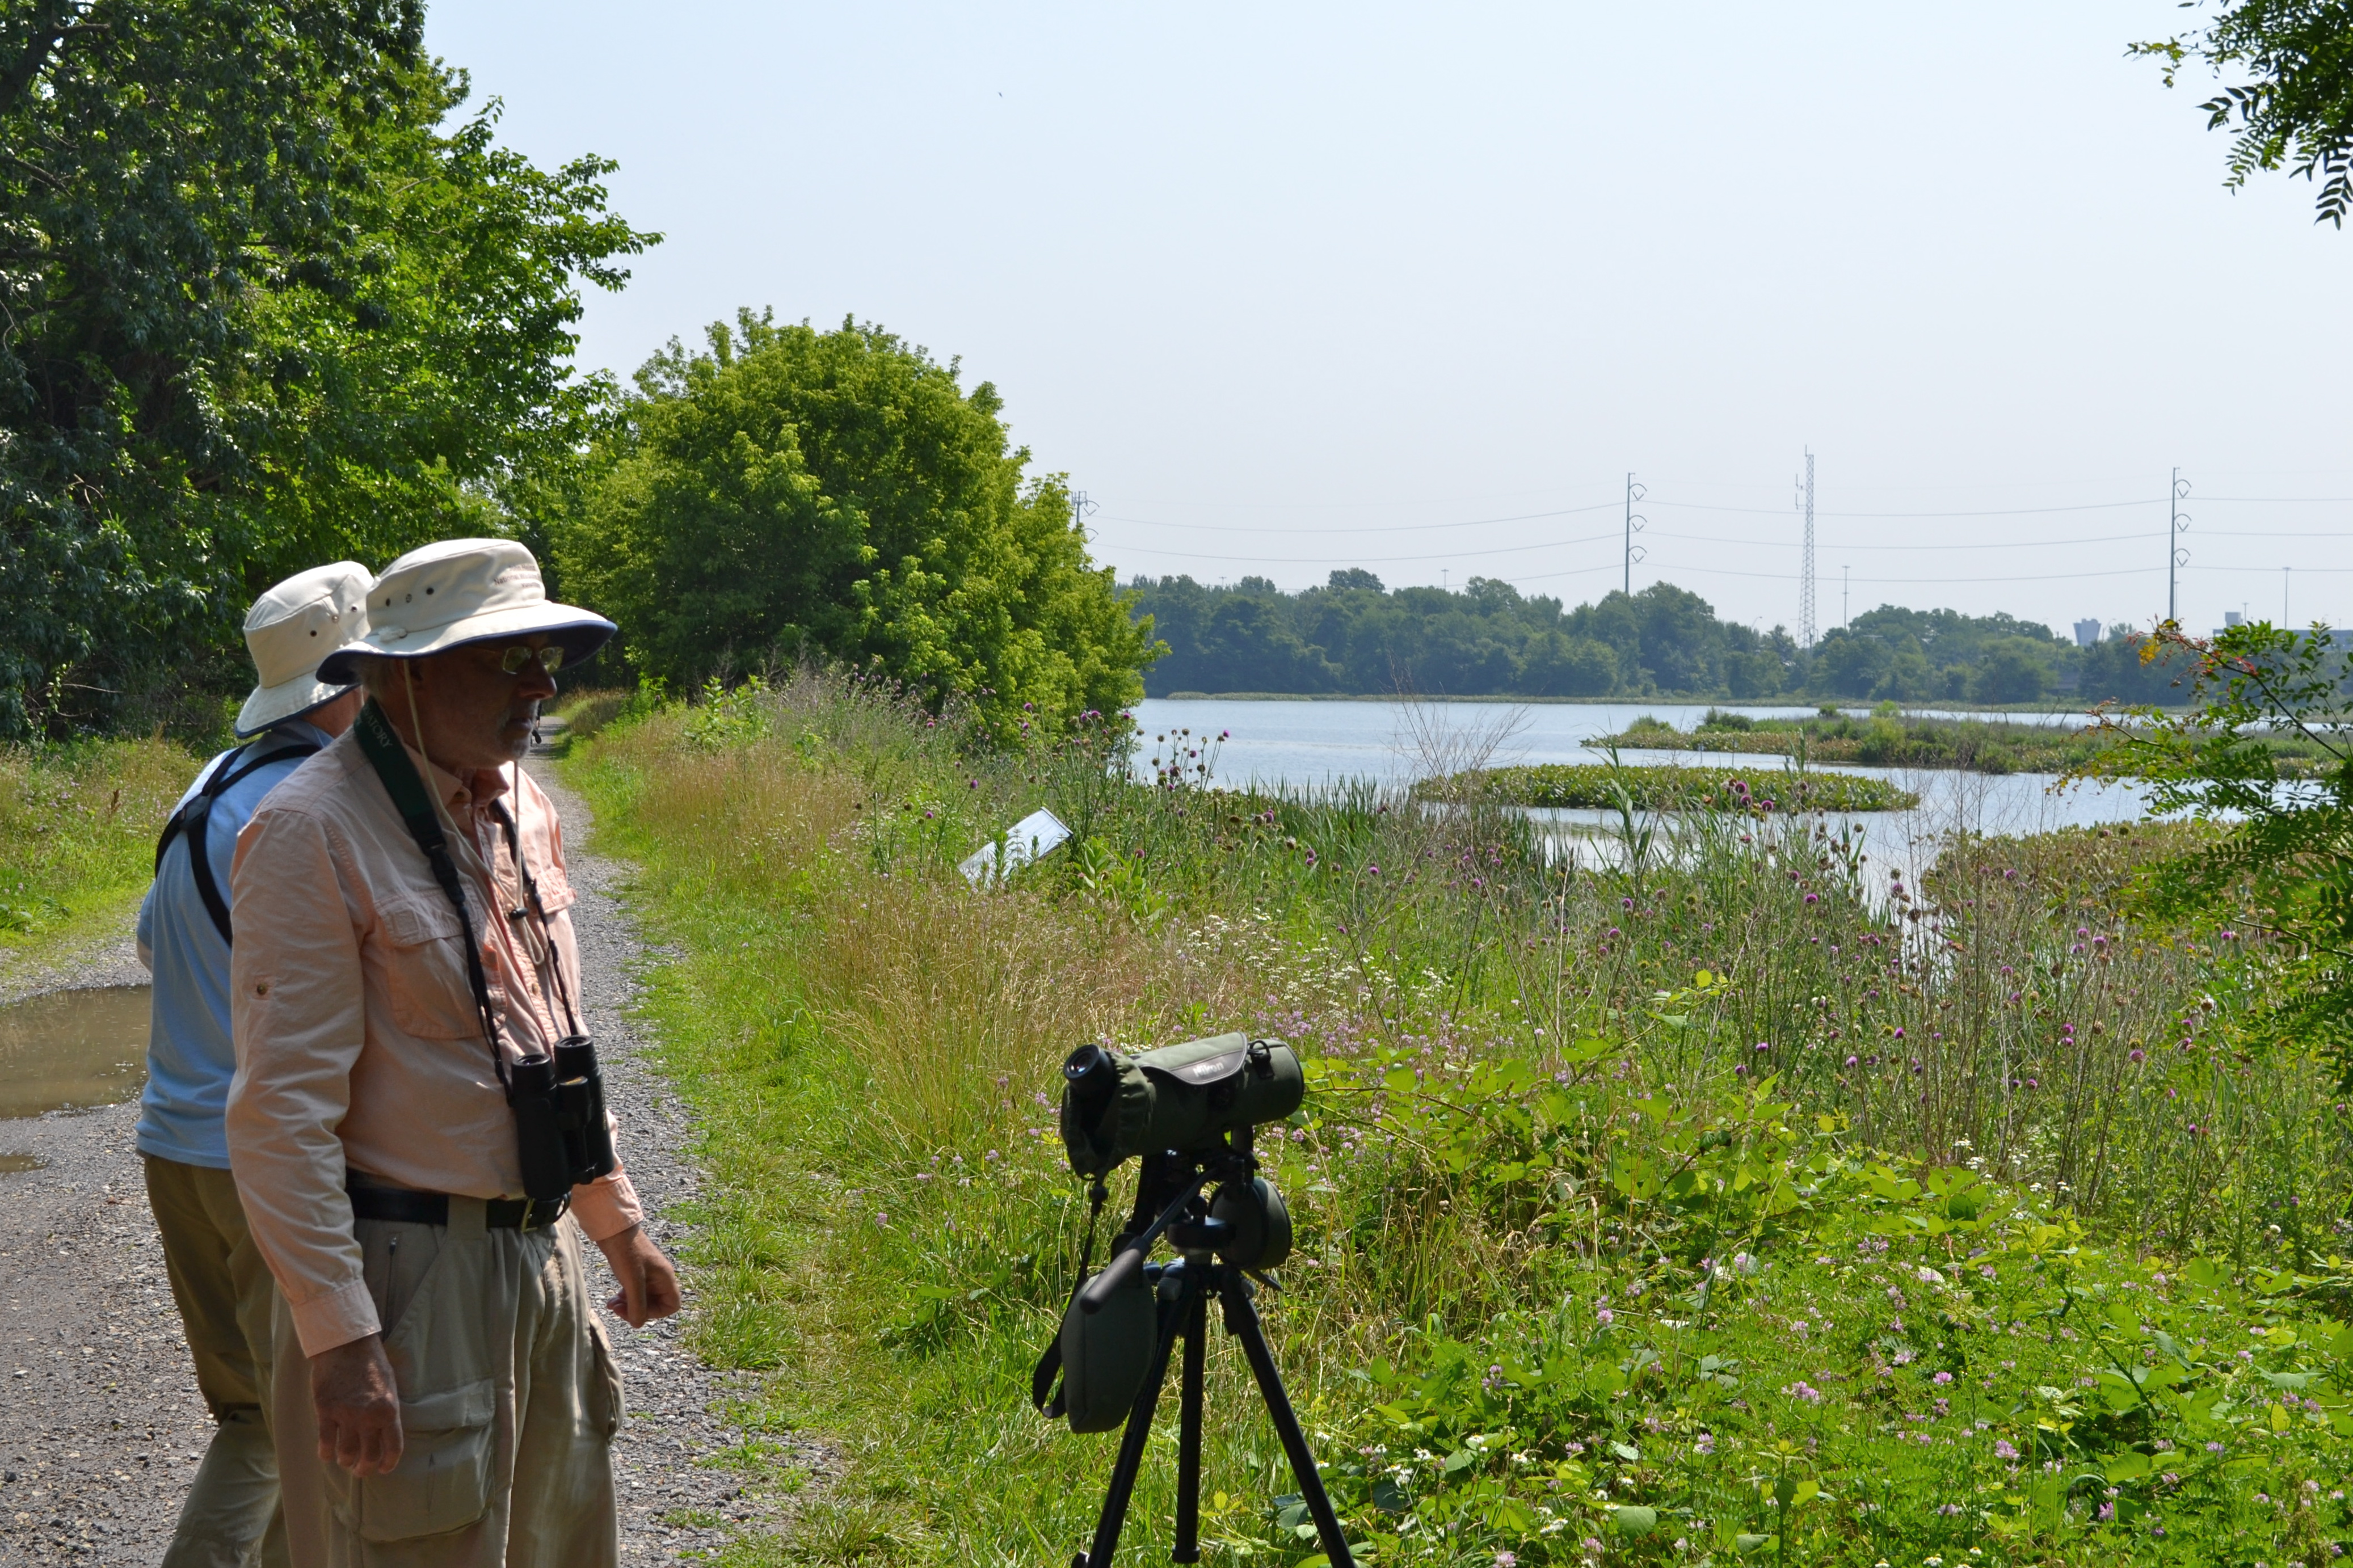 Volunteers keep an eye on eagle activity and point the birds and their nest out to passersby